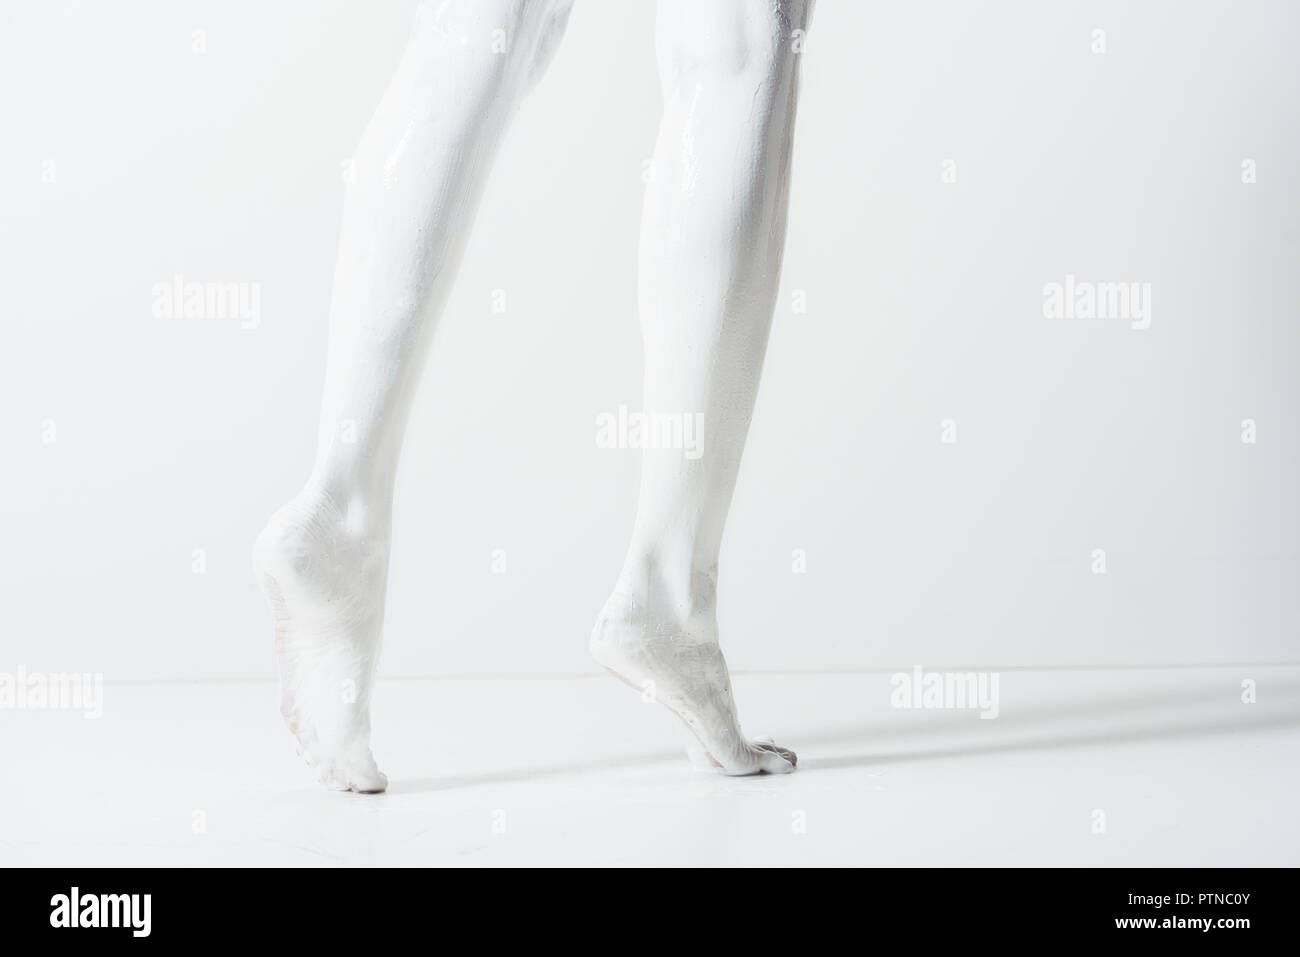 cropped image of girl with legs painted with white paint walking on white floor - Stock Image